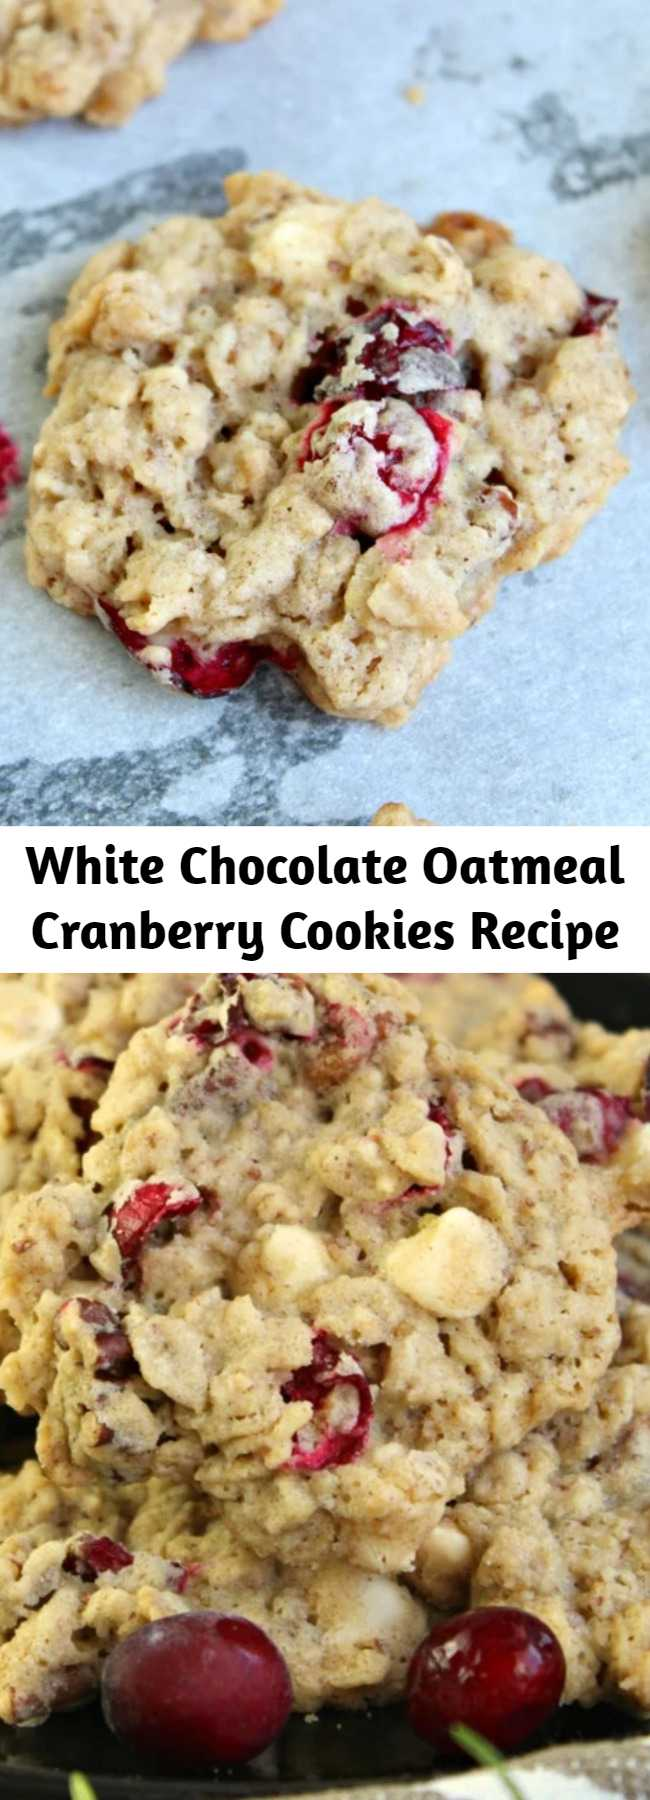 White Chocolate Oatmeal Cranberry Cookies Recipe - Oatmeal Cranberry Cookies with fresh cranberries, oats, white chocolate chips and pecans. A delicious and simple holiday cookie recipe to add to your baking list that everyone will absolutely Love!